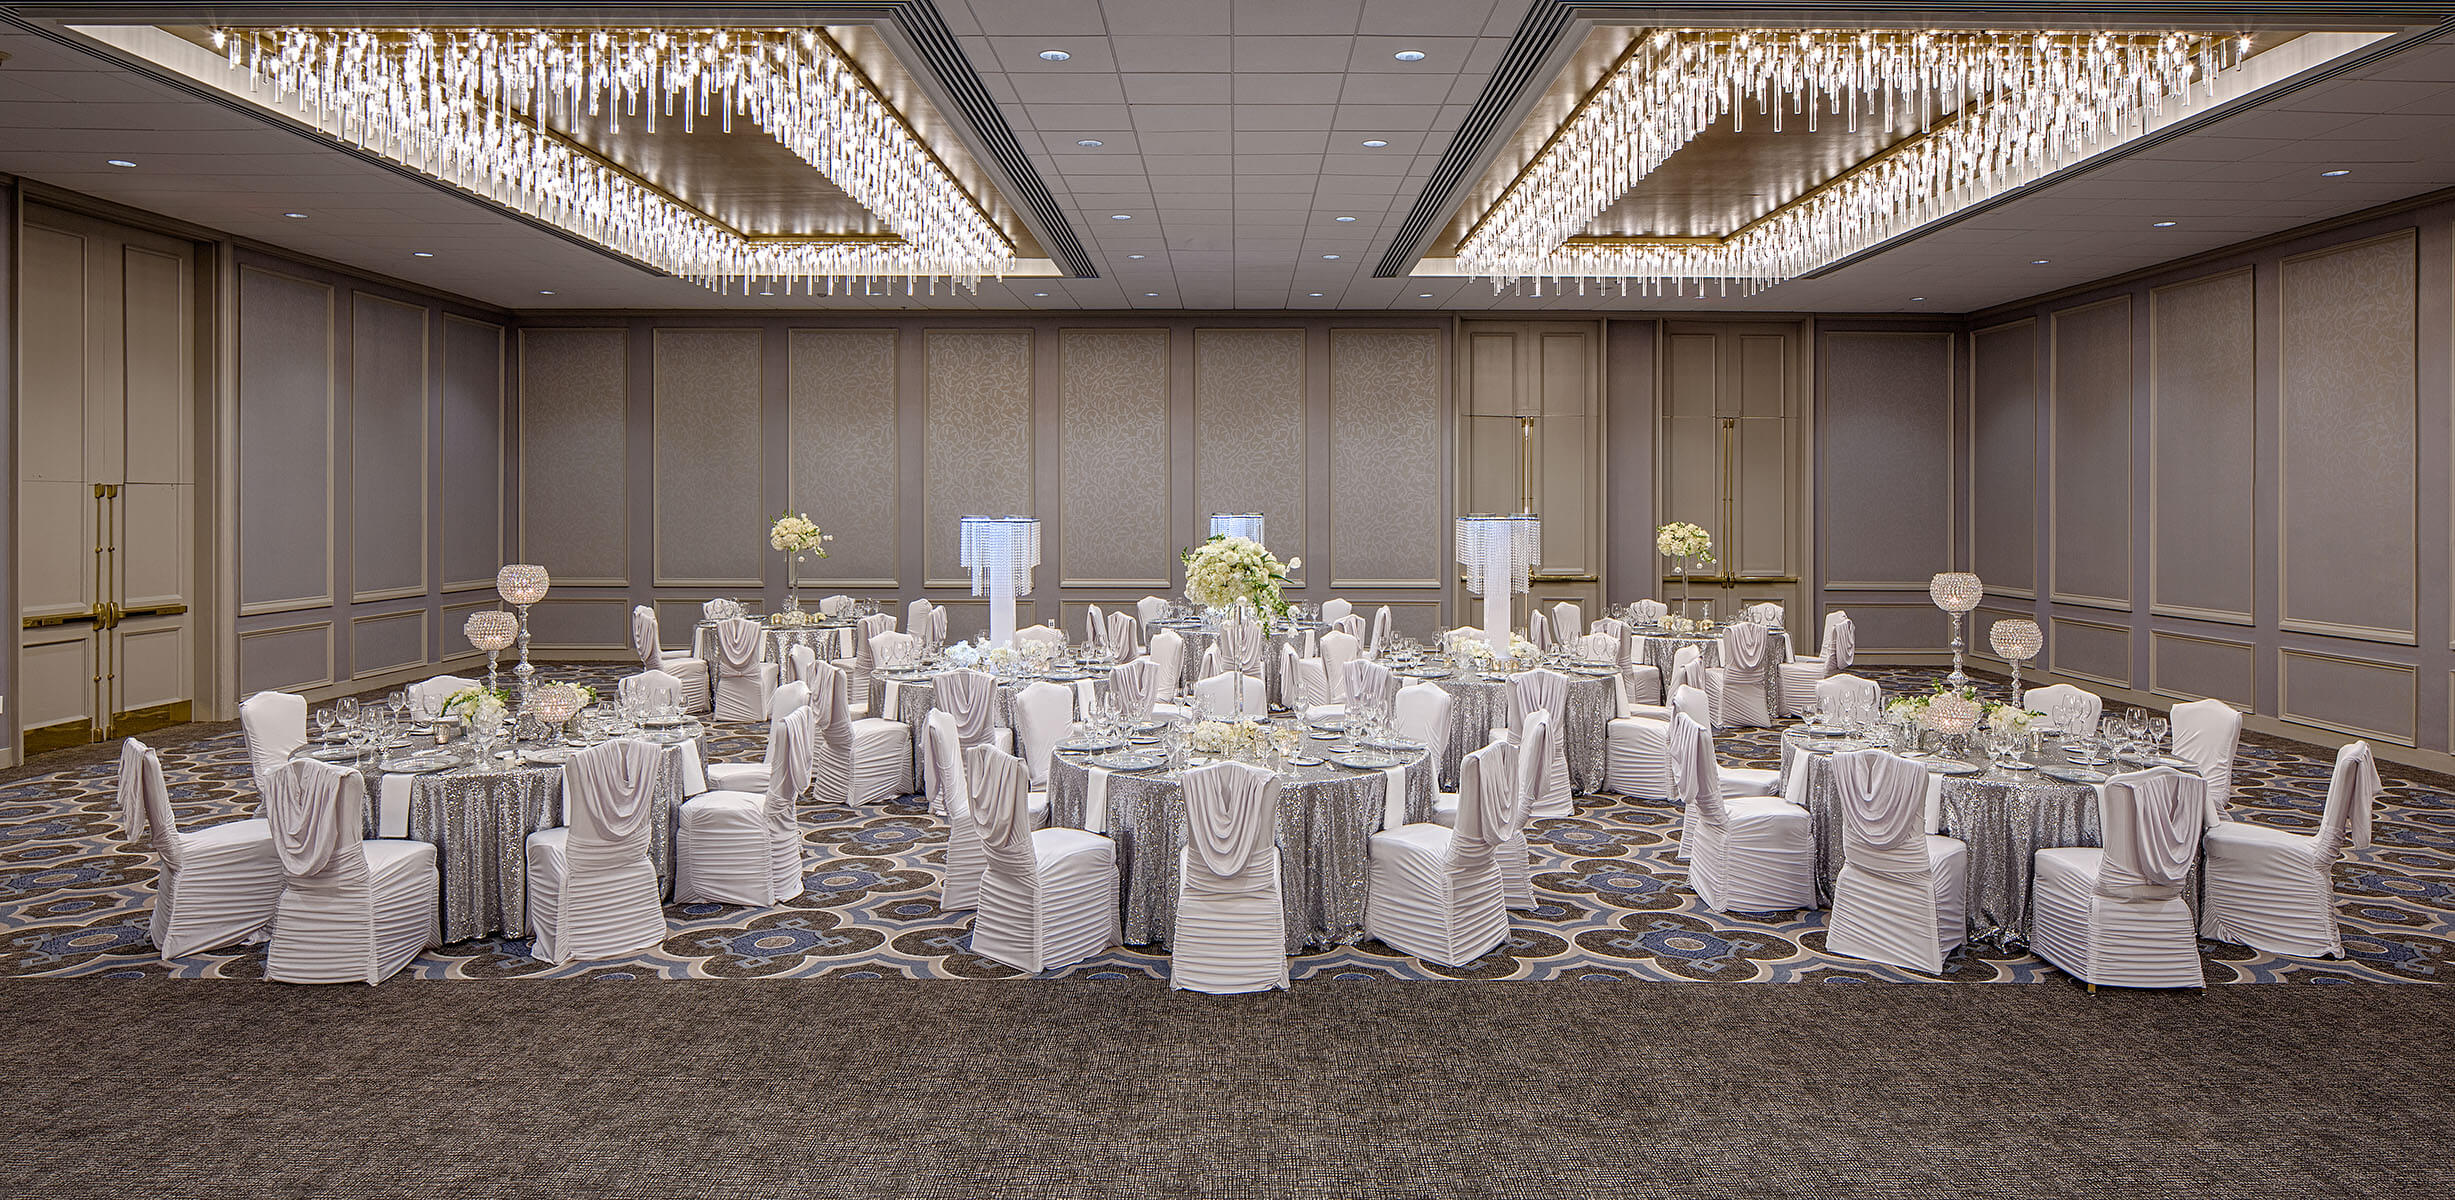 Wedding Venue – DoubleTree by Hilton Houston Greenway Plaza